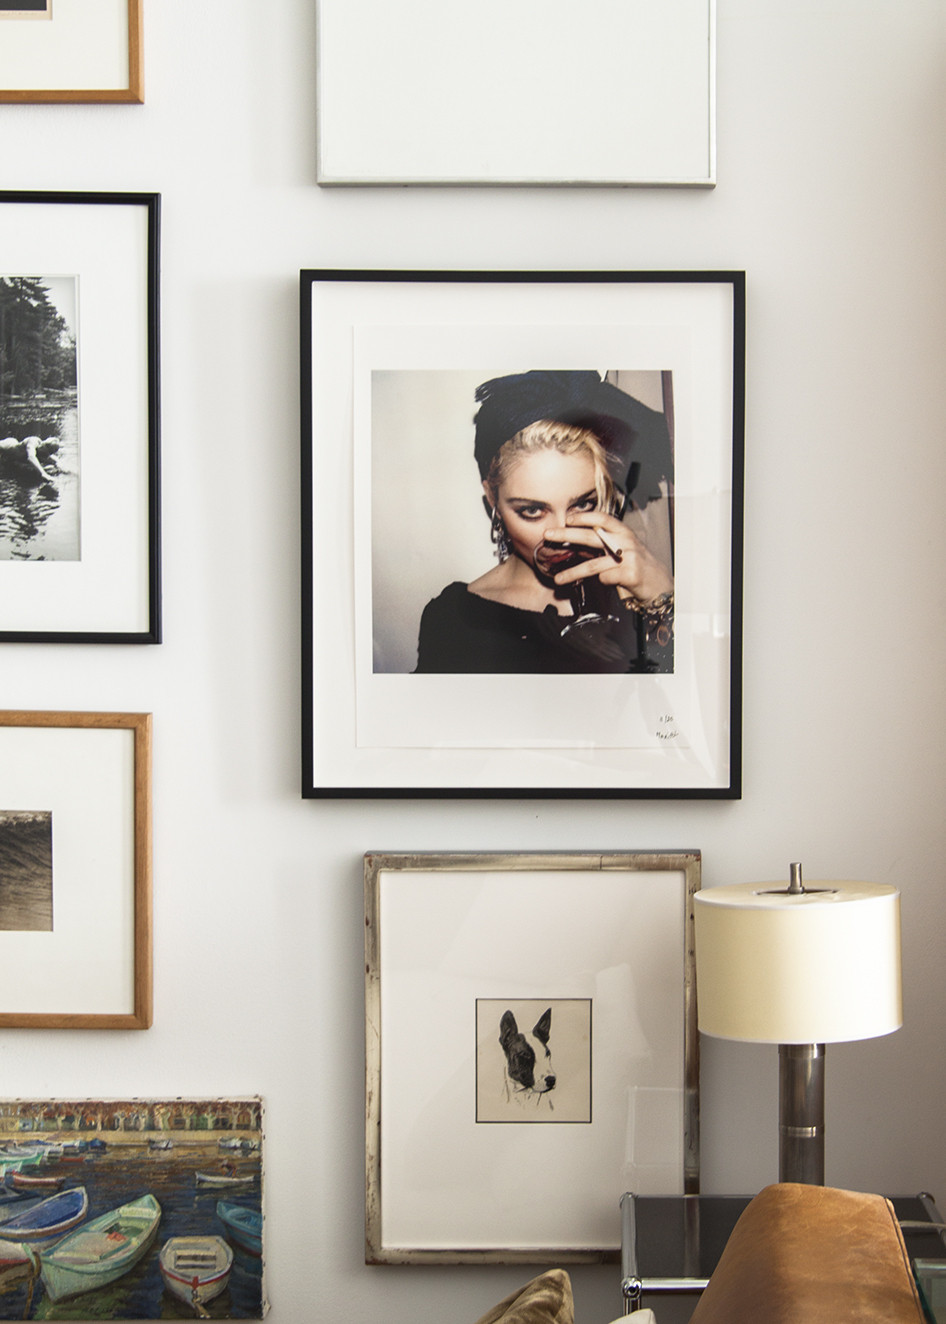 A gallery wall of portraits, paintings, and favorite photographs hangs on one wall in the living room.